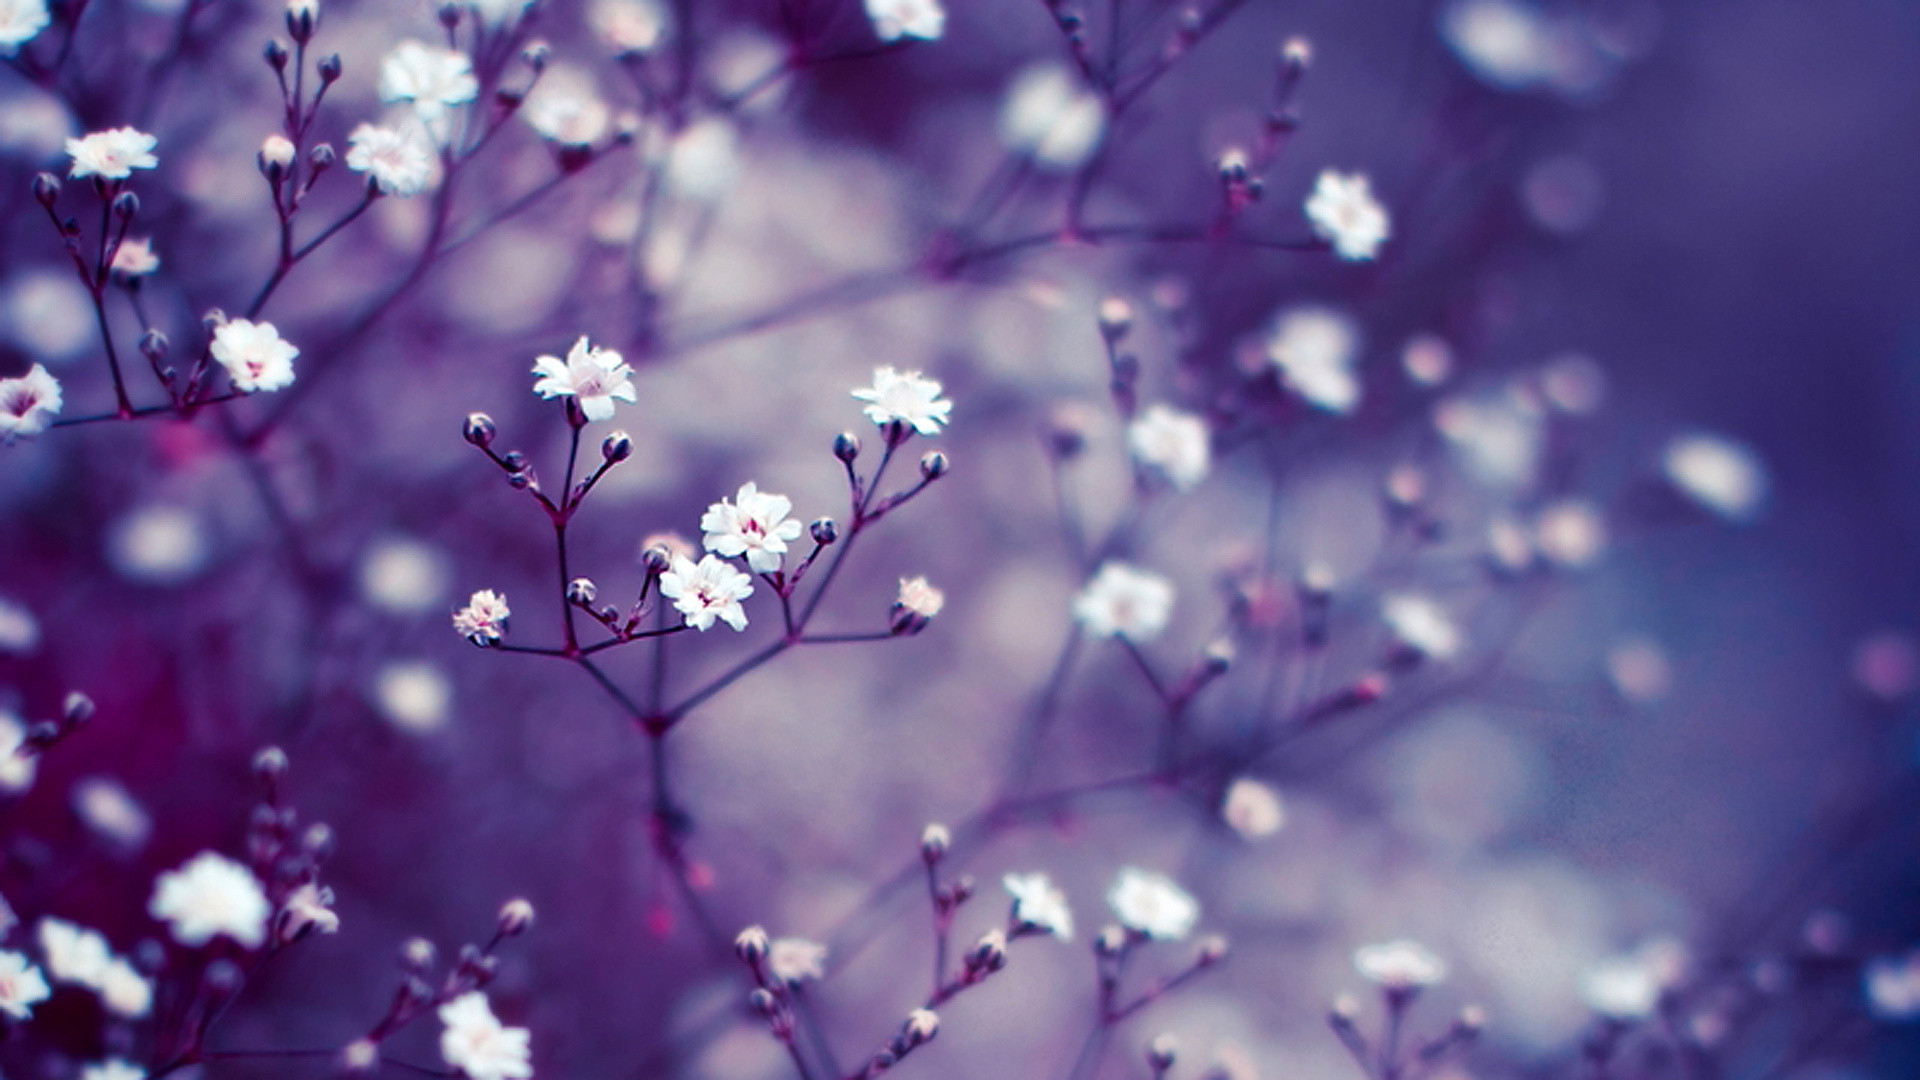 Lavender flower wallpaper 70 pictures lavender flower wide wallpaper 1920x1080 izmirmasajfo